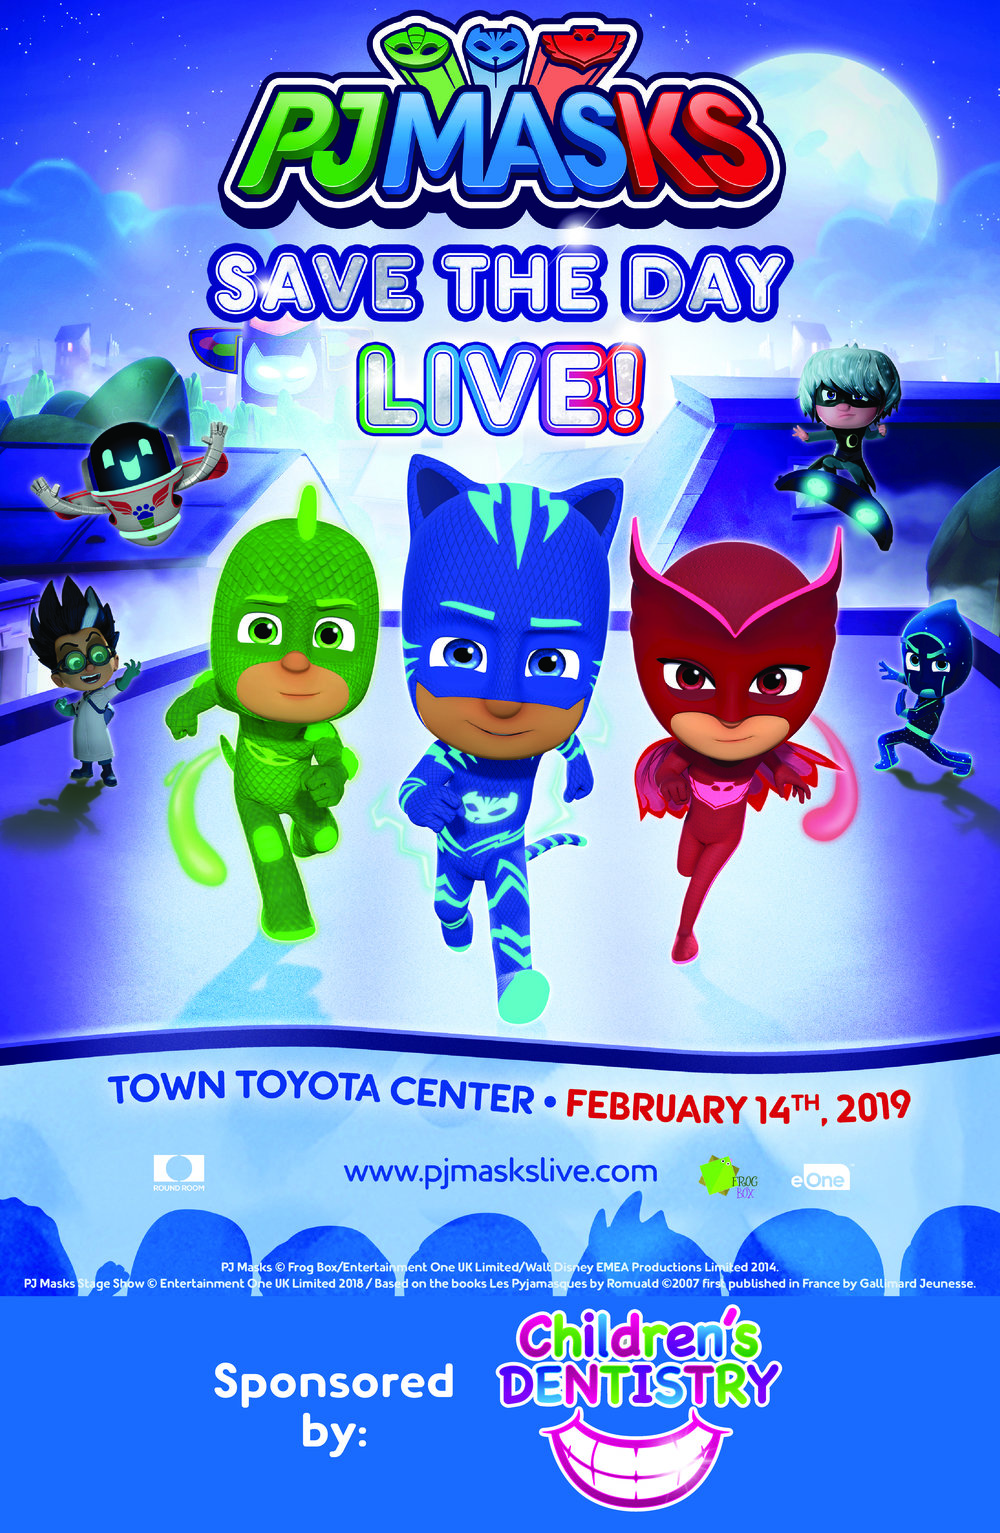 PJ Masks FINAL poster 11x17.jpg